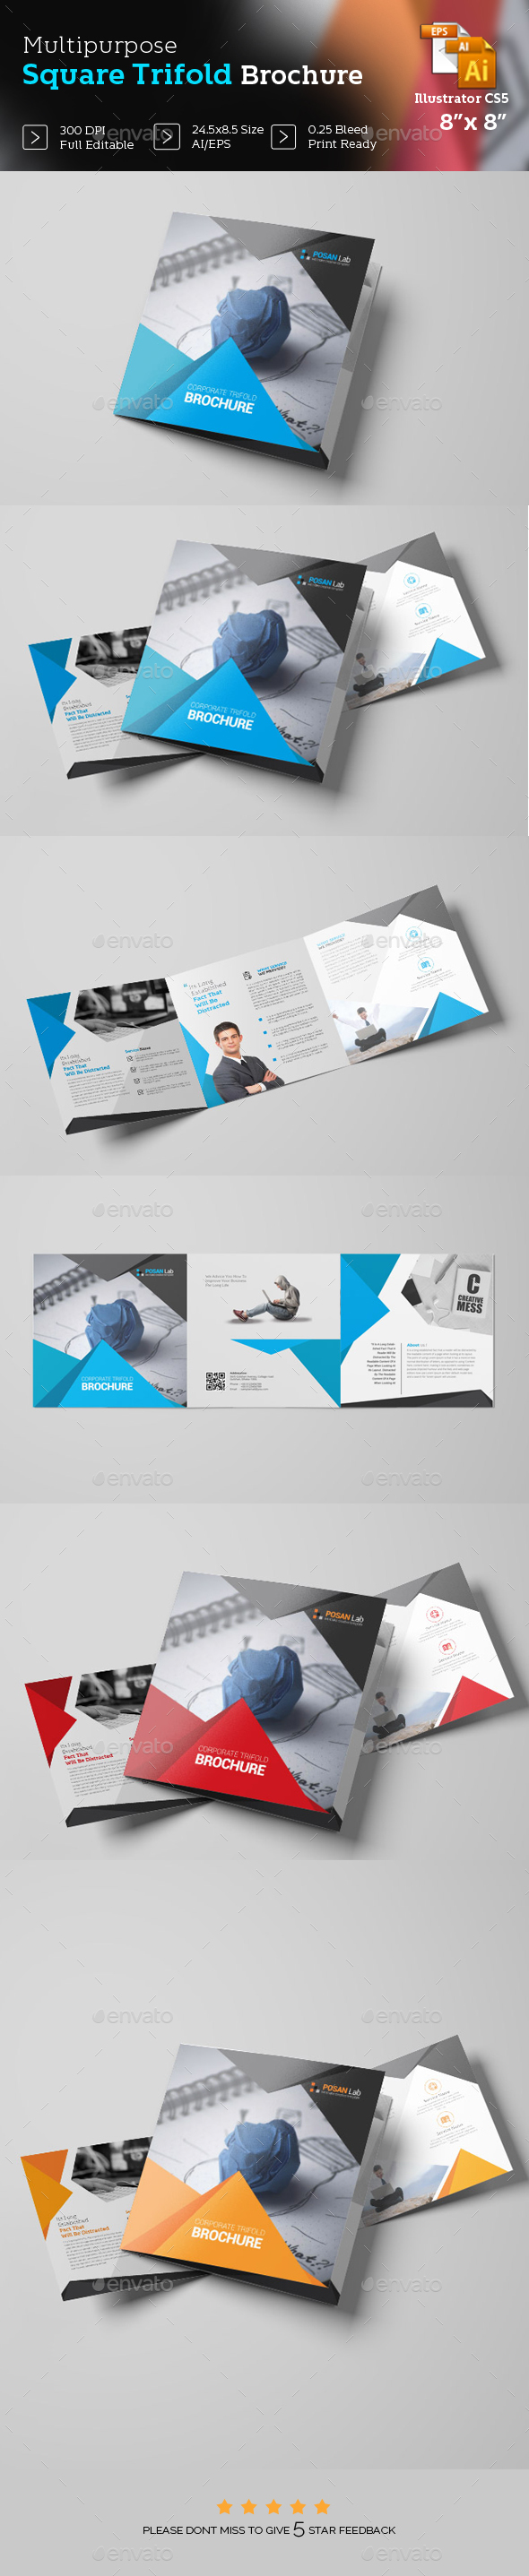 Square Trifold Brochure Template - Brochures Print Templates